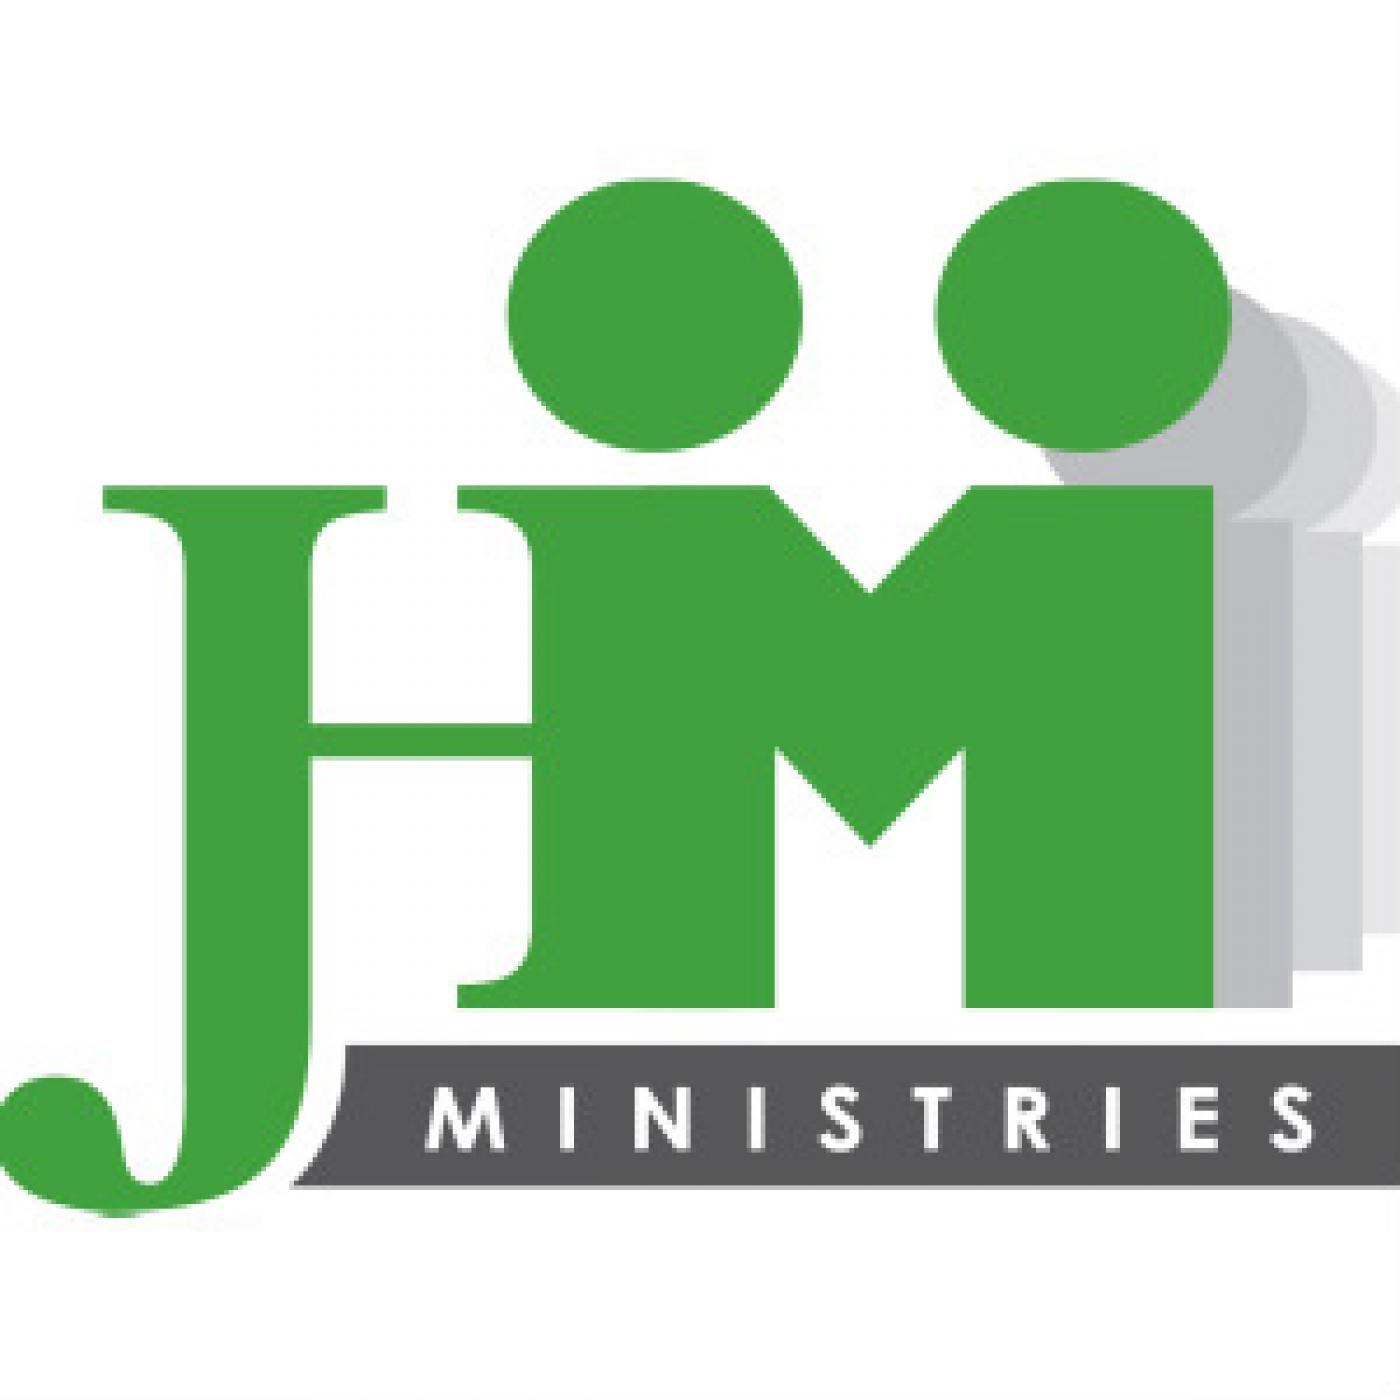 JHMinistries - Growing Leaders Locally and Beyond